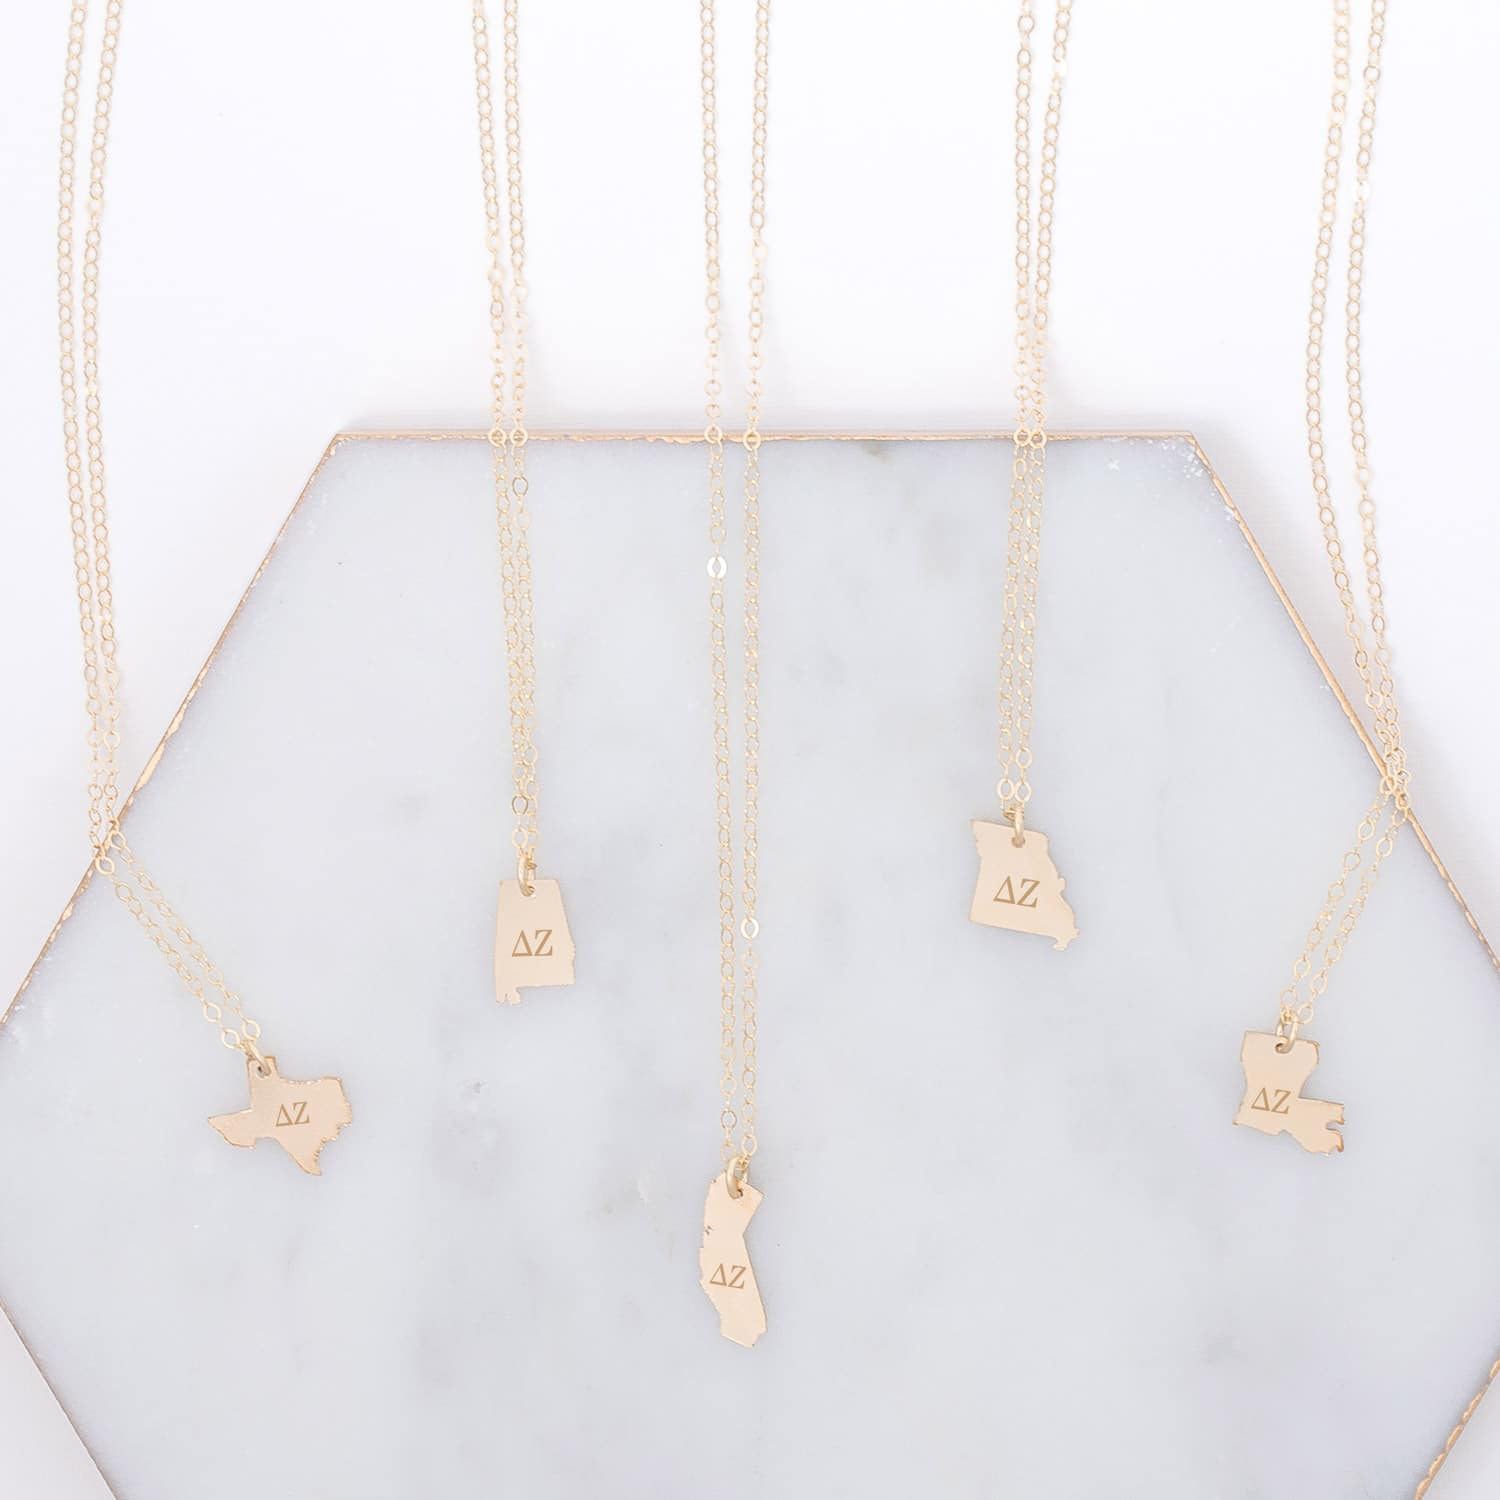 delta-zeta-state-necklace-gold-compilation-on-marble